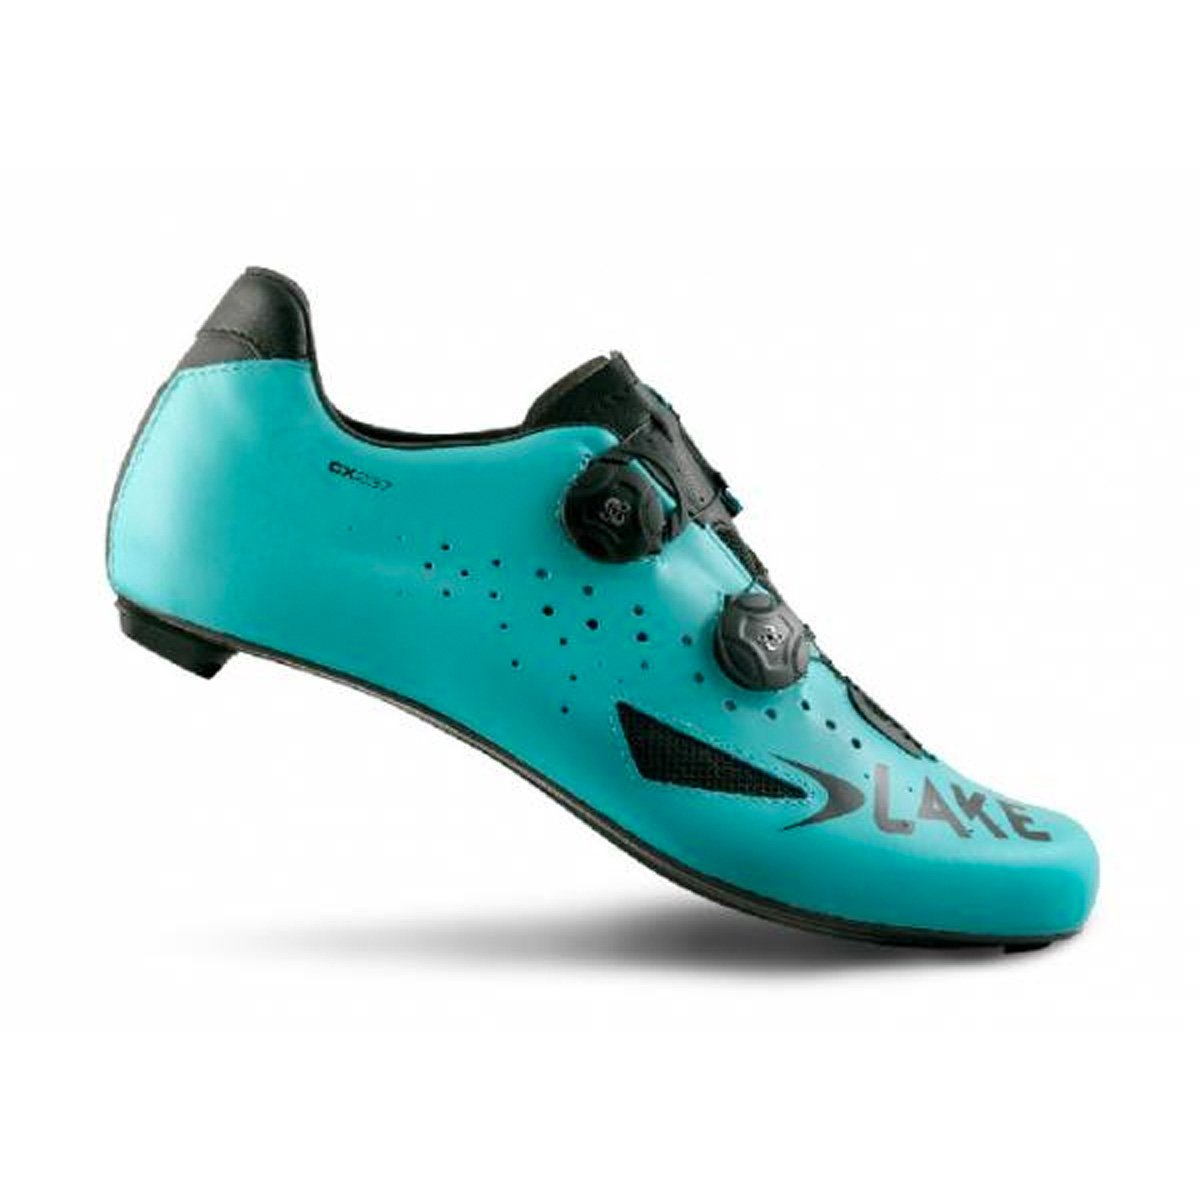 Lake CX237 Road Shoes - Men's B077Z7DJ3F 43|Blue/Black